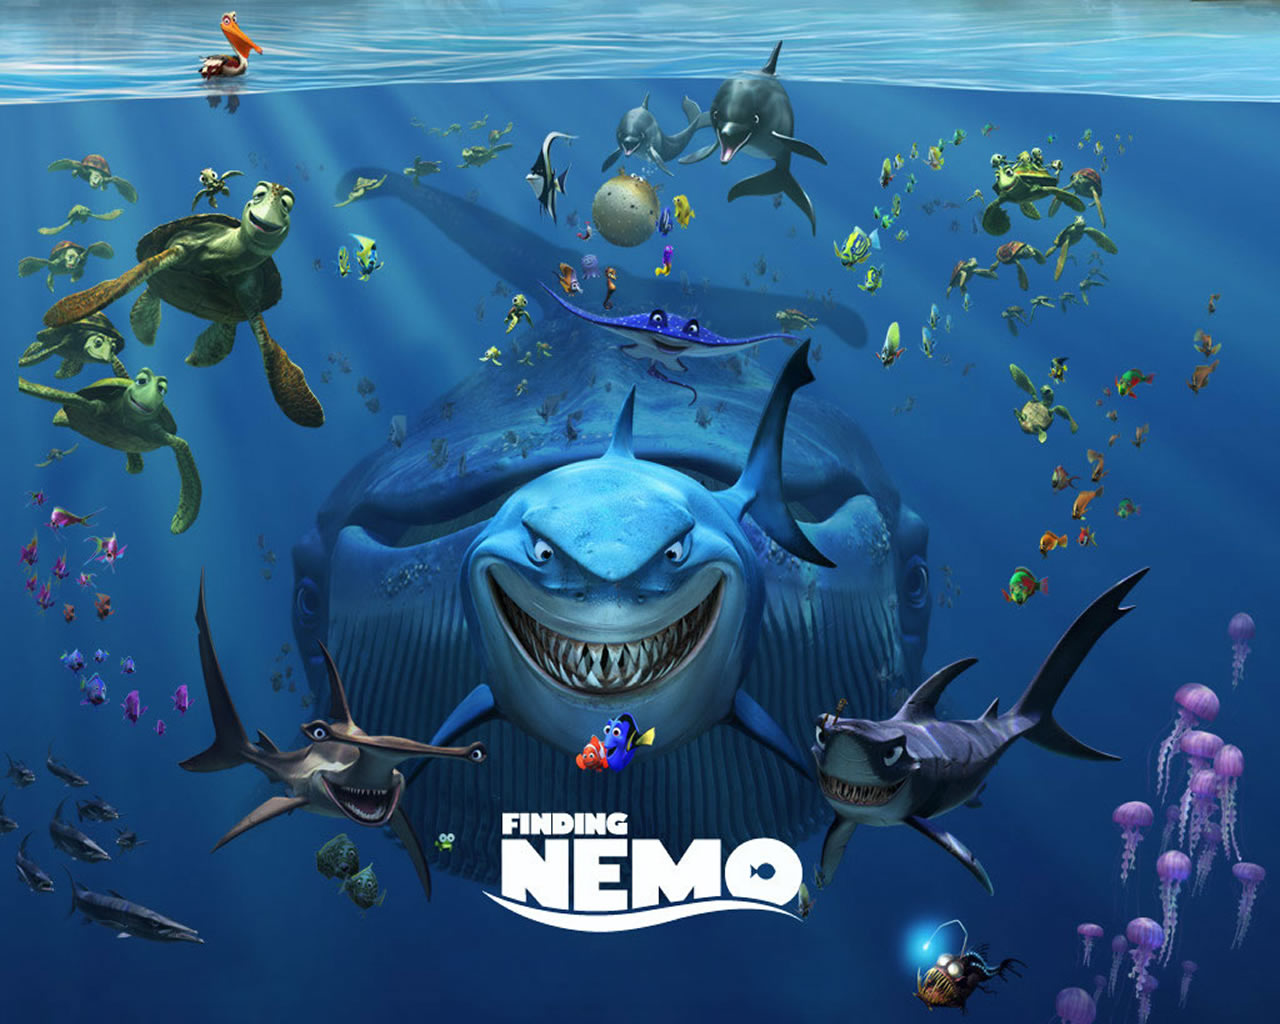 download wallpaper: Finding Nemo figuurtjes wallpaper